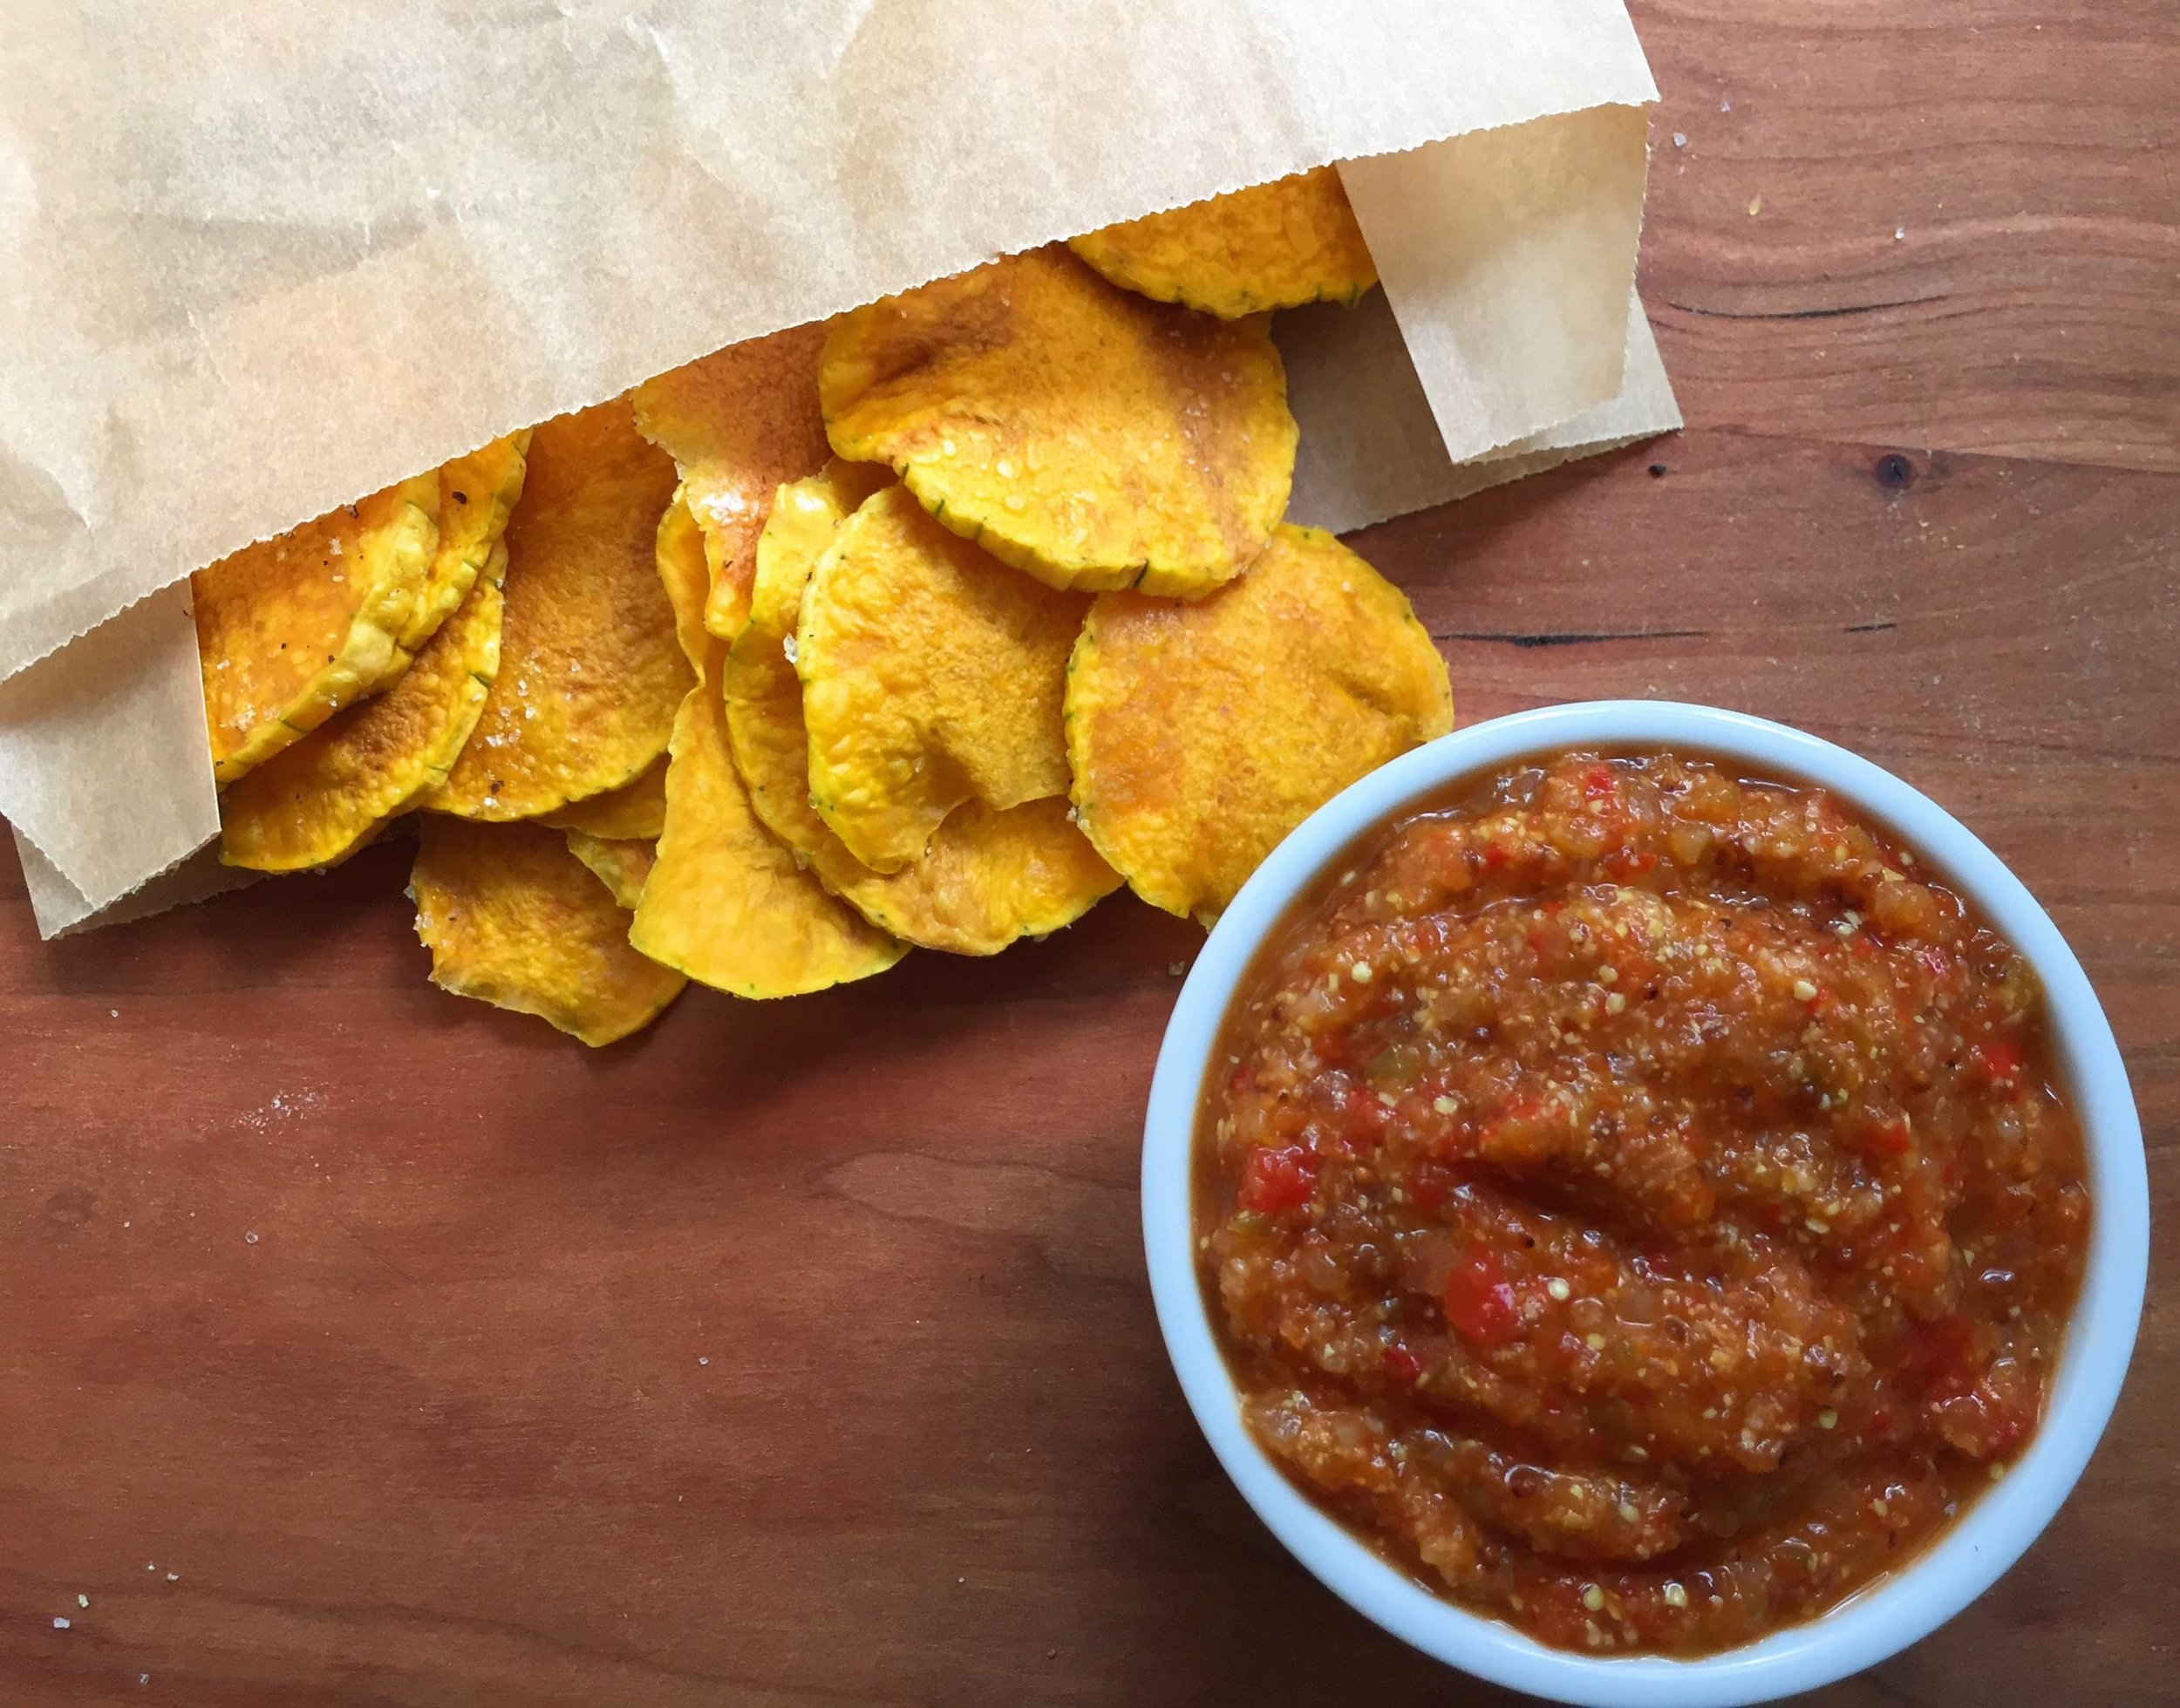 Recipe of the week - Microwave Butternut Squash and Fiery Salsa